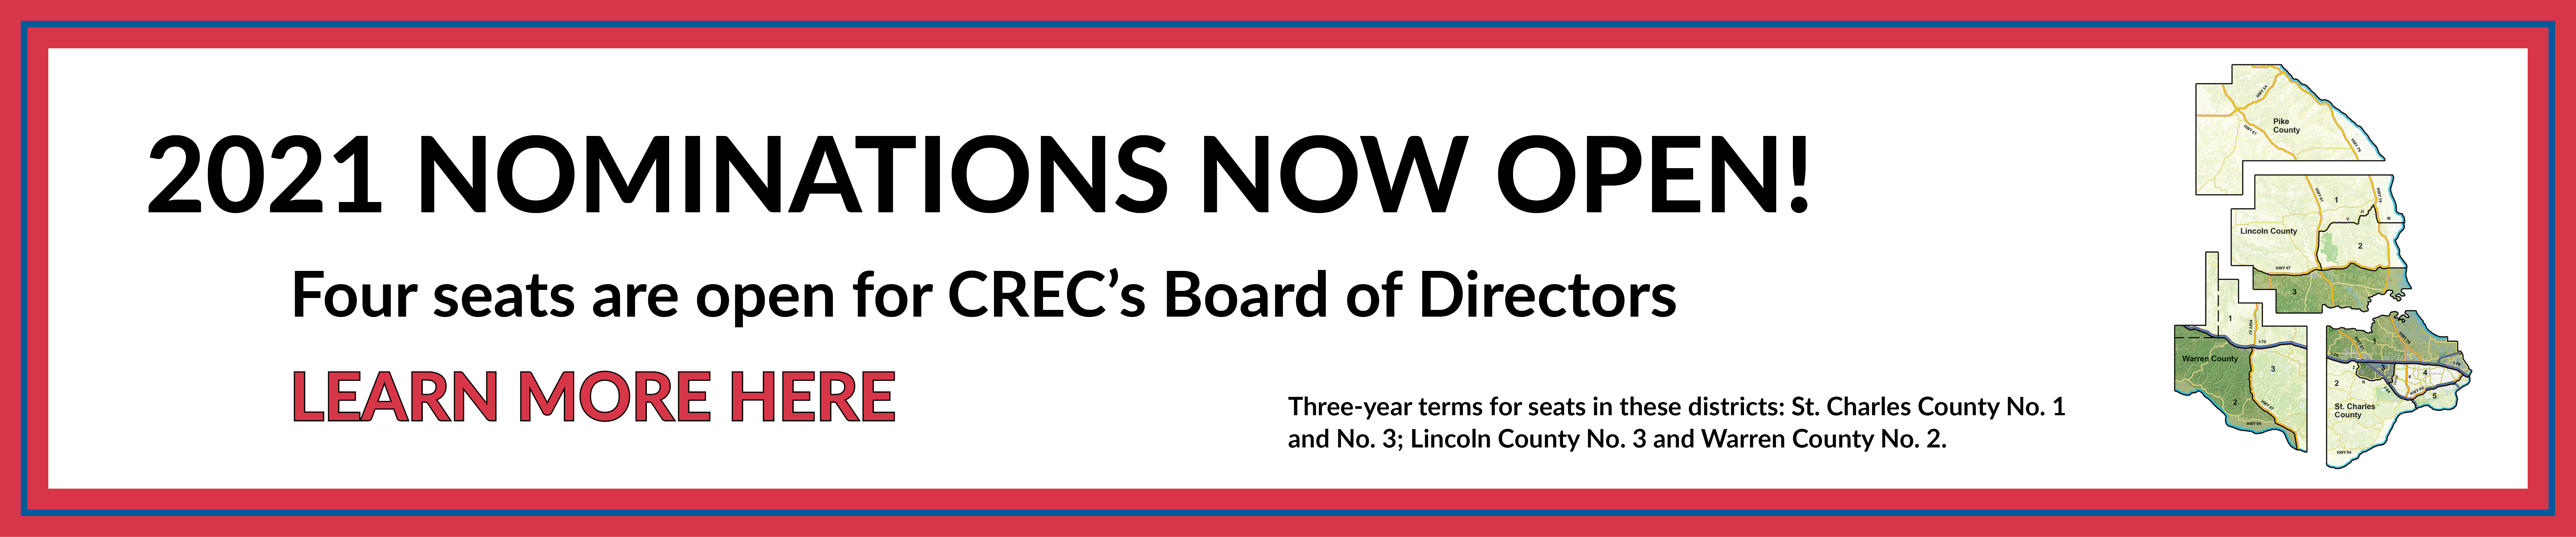 Nominations are now open for CREC's Board of Directors. Click here to learn more.